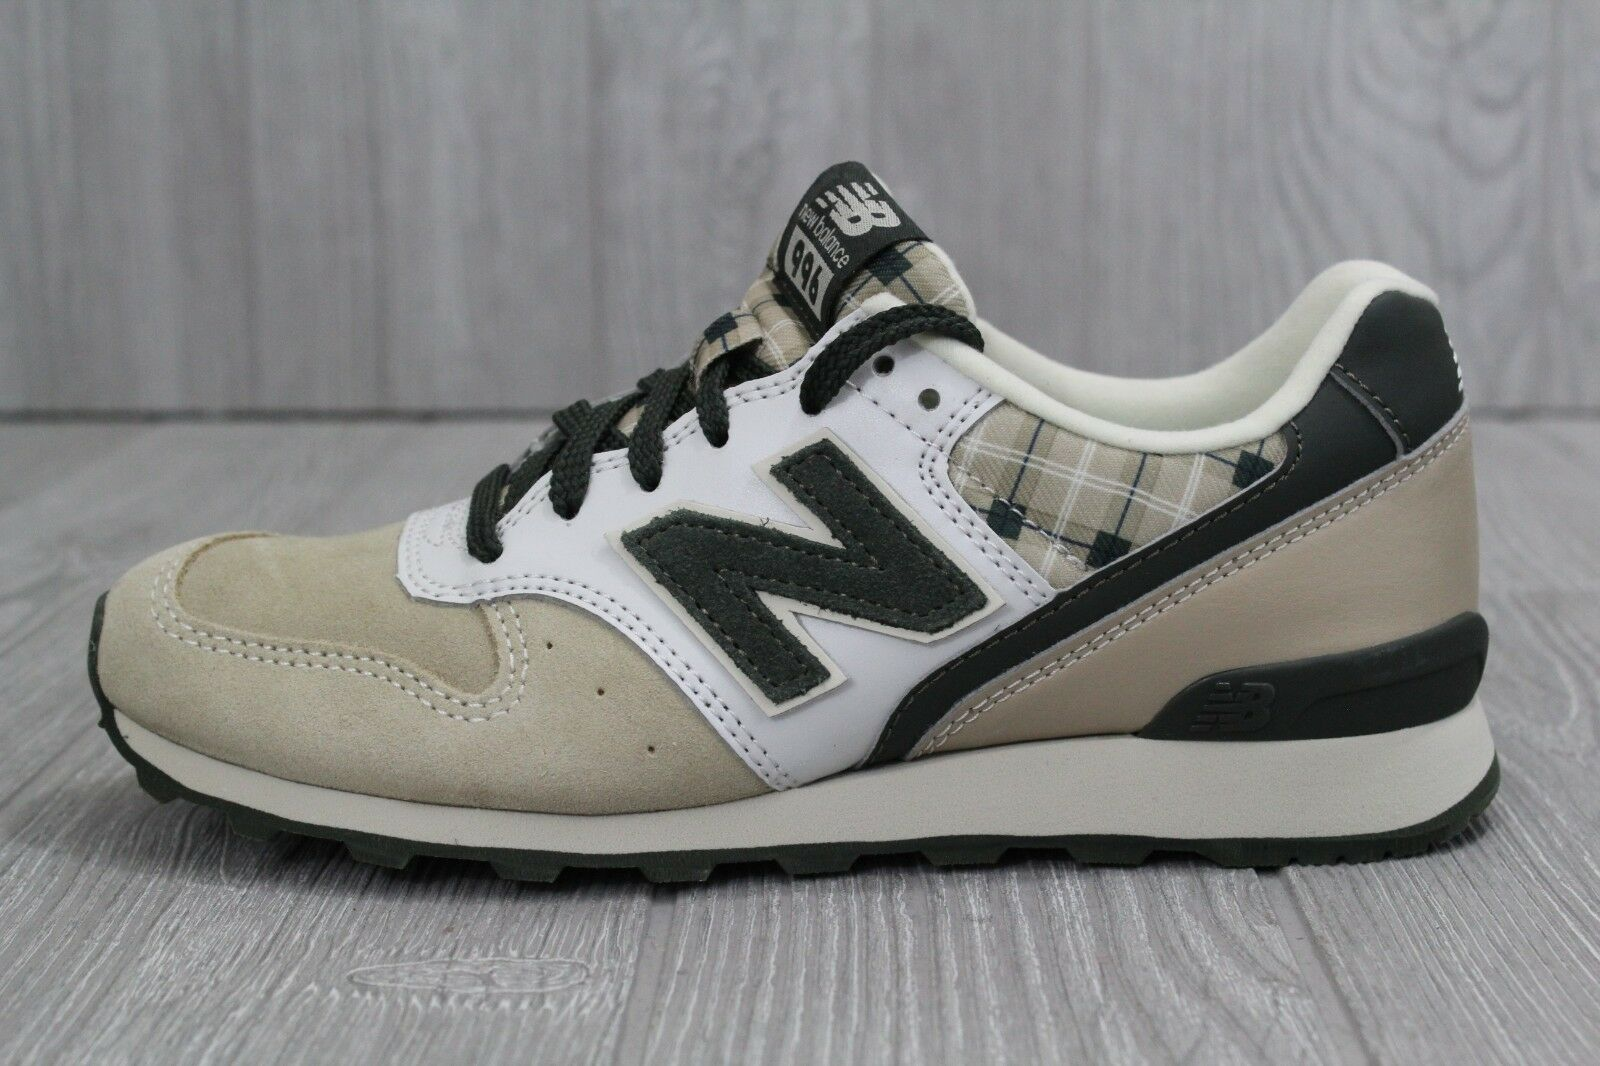 29 New Balance 996 WR996TP D Beige Green Green Green Suede Womens Retro Running shoes Size 6 afcd9a